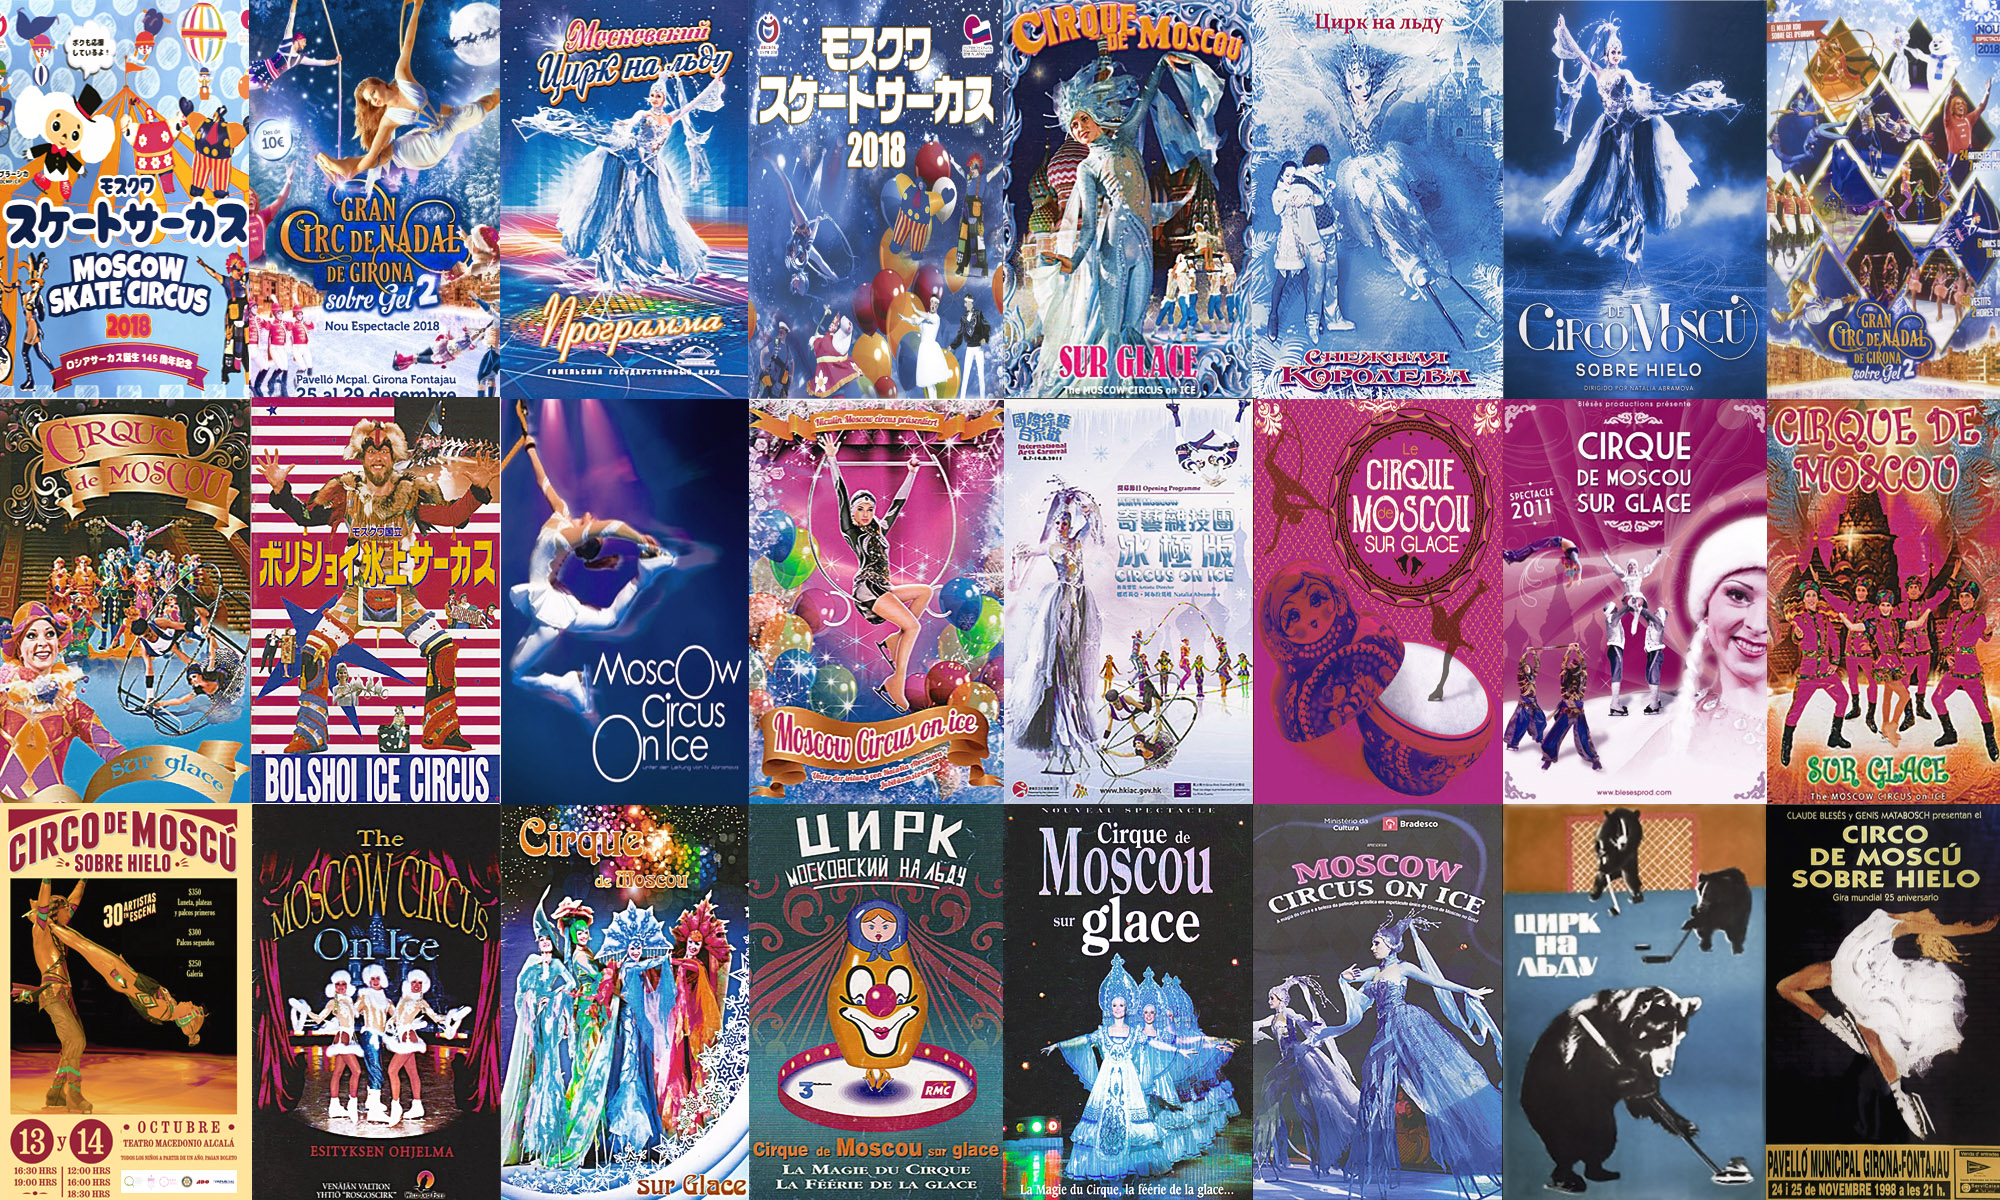 Moscow circus on ice posters collage